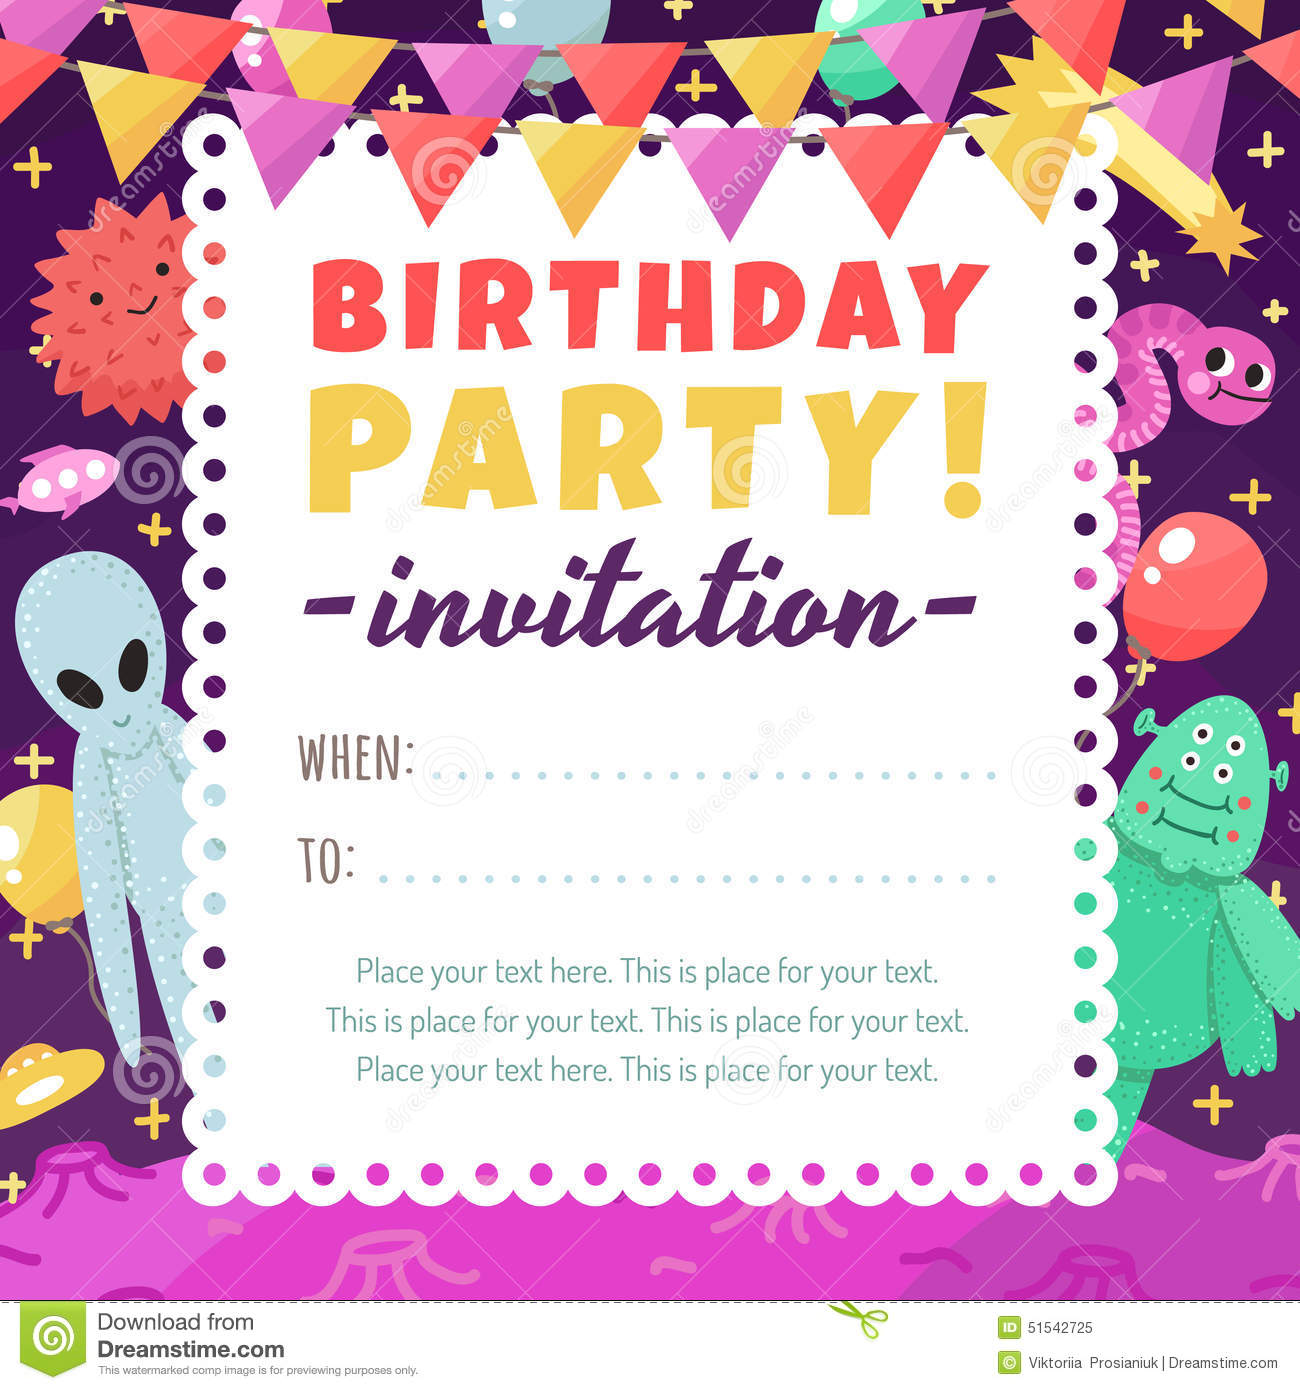 In space party invitation stock vector Illustration of speed 19029839